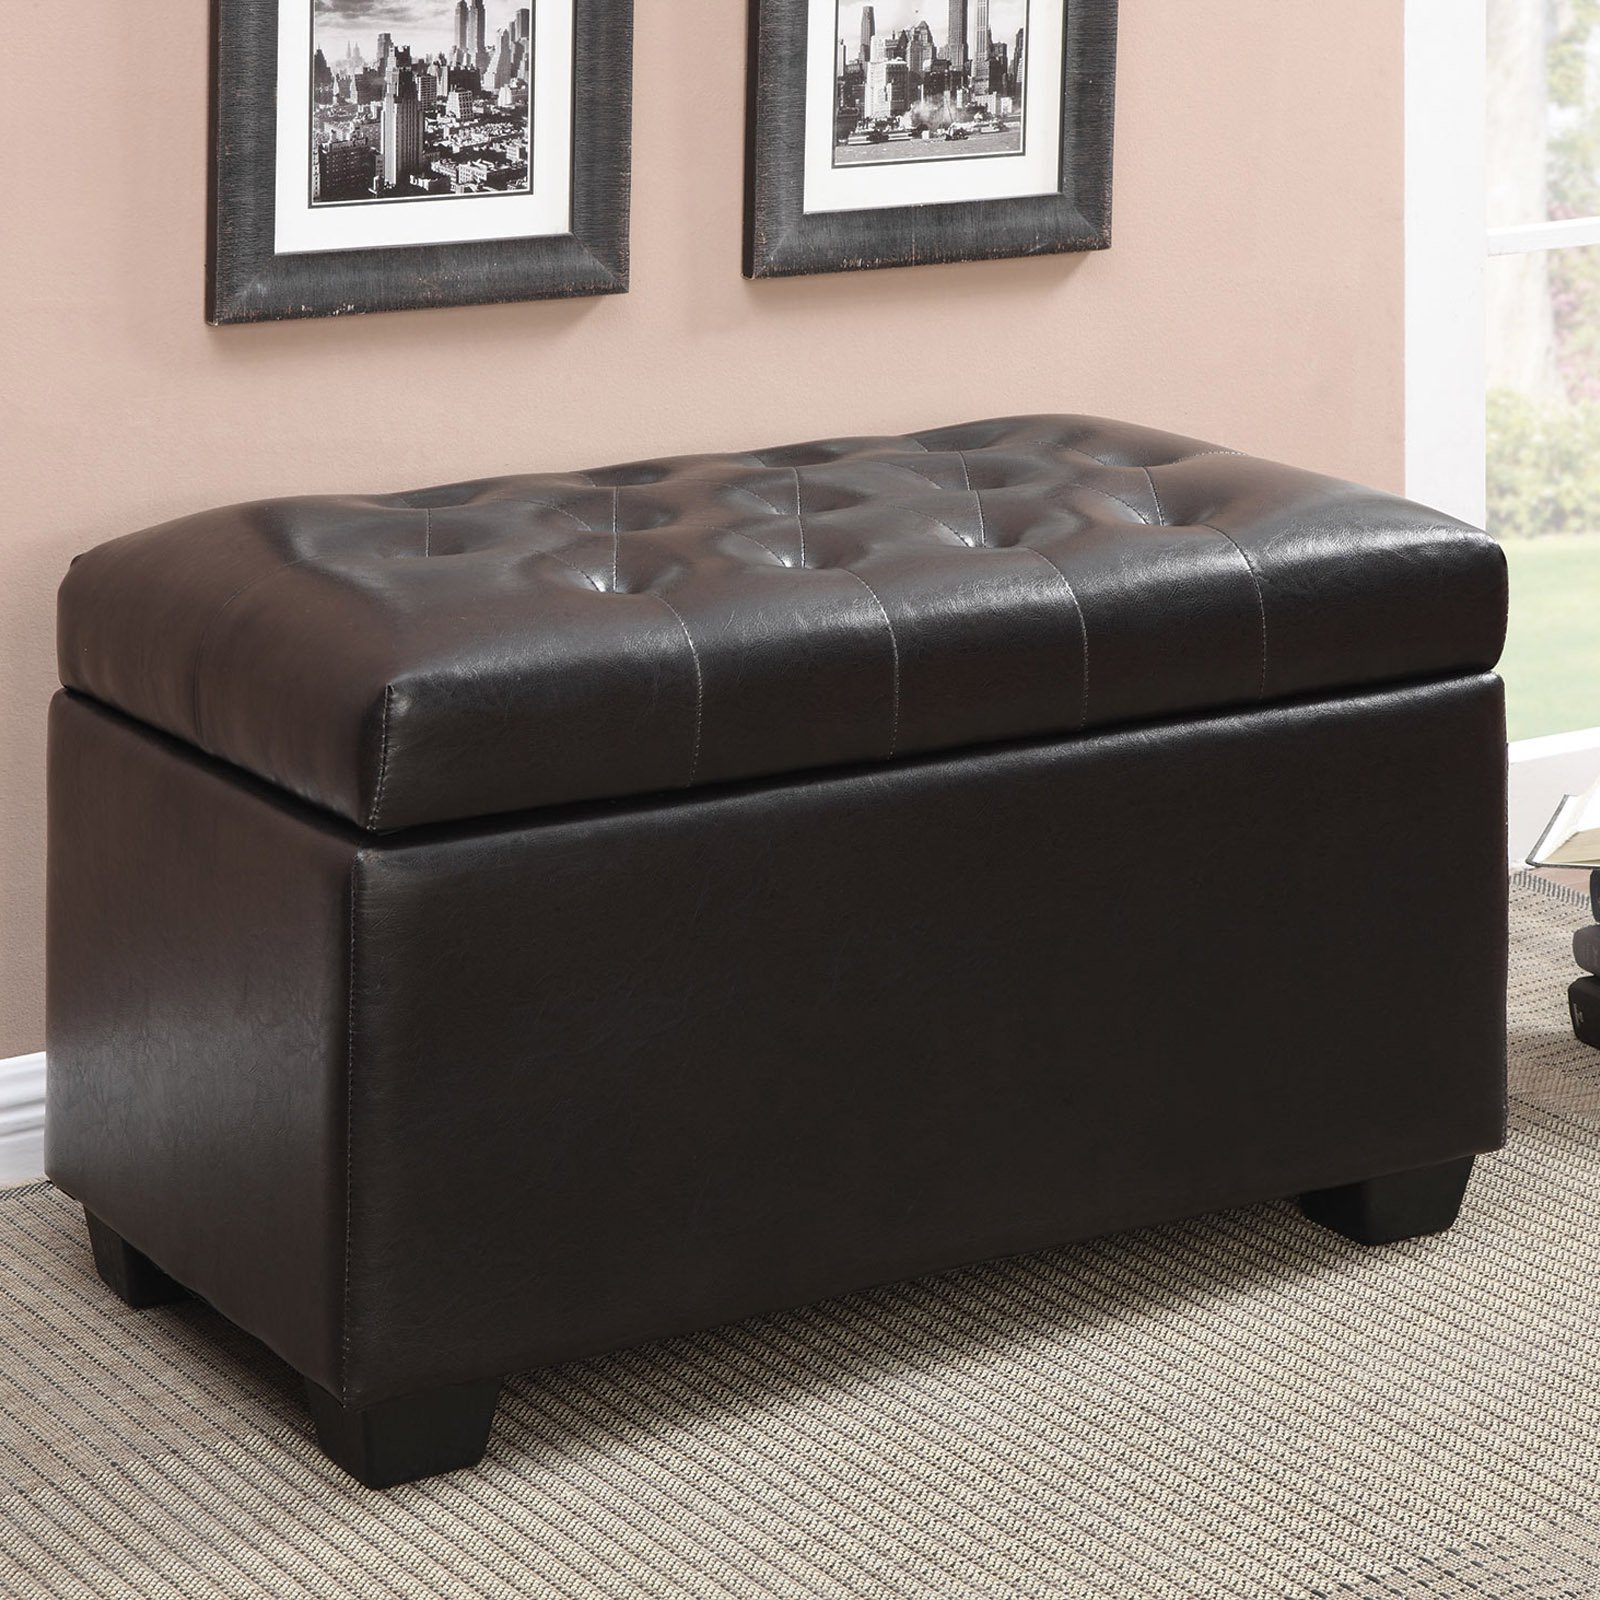 Coaster Tufted Seating Storage Ottoman, Dark Brown by Coaster Company